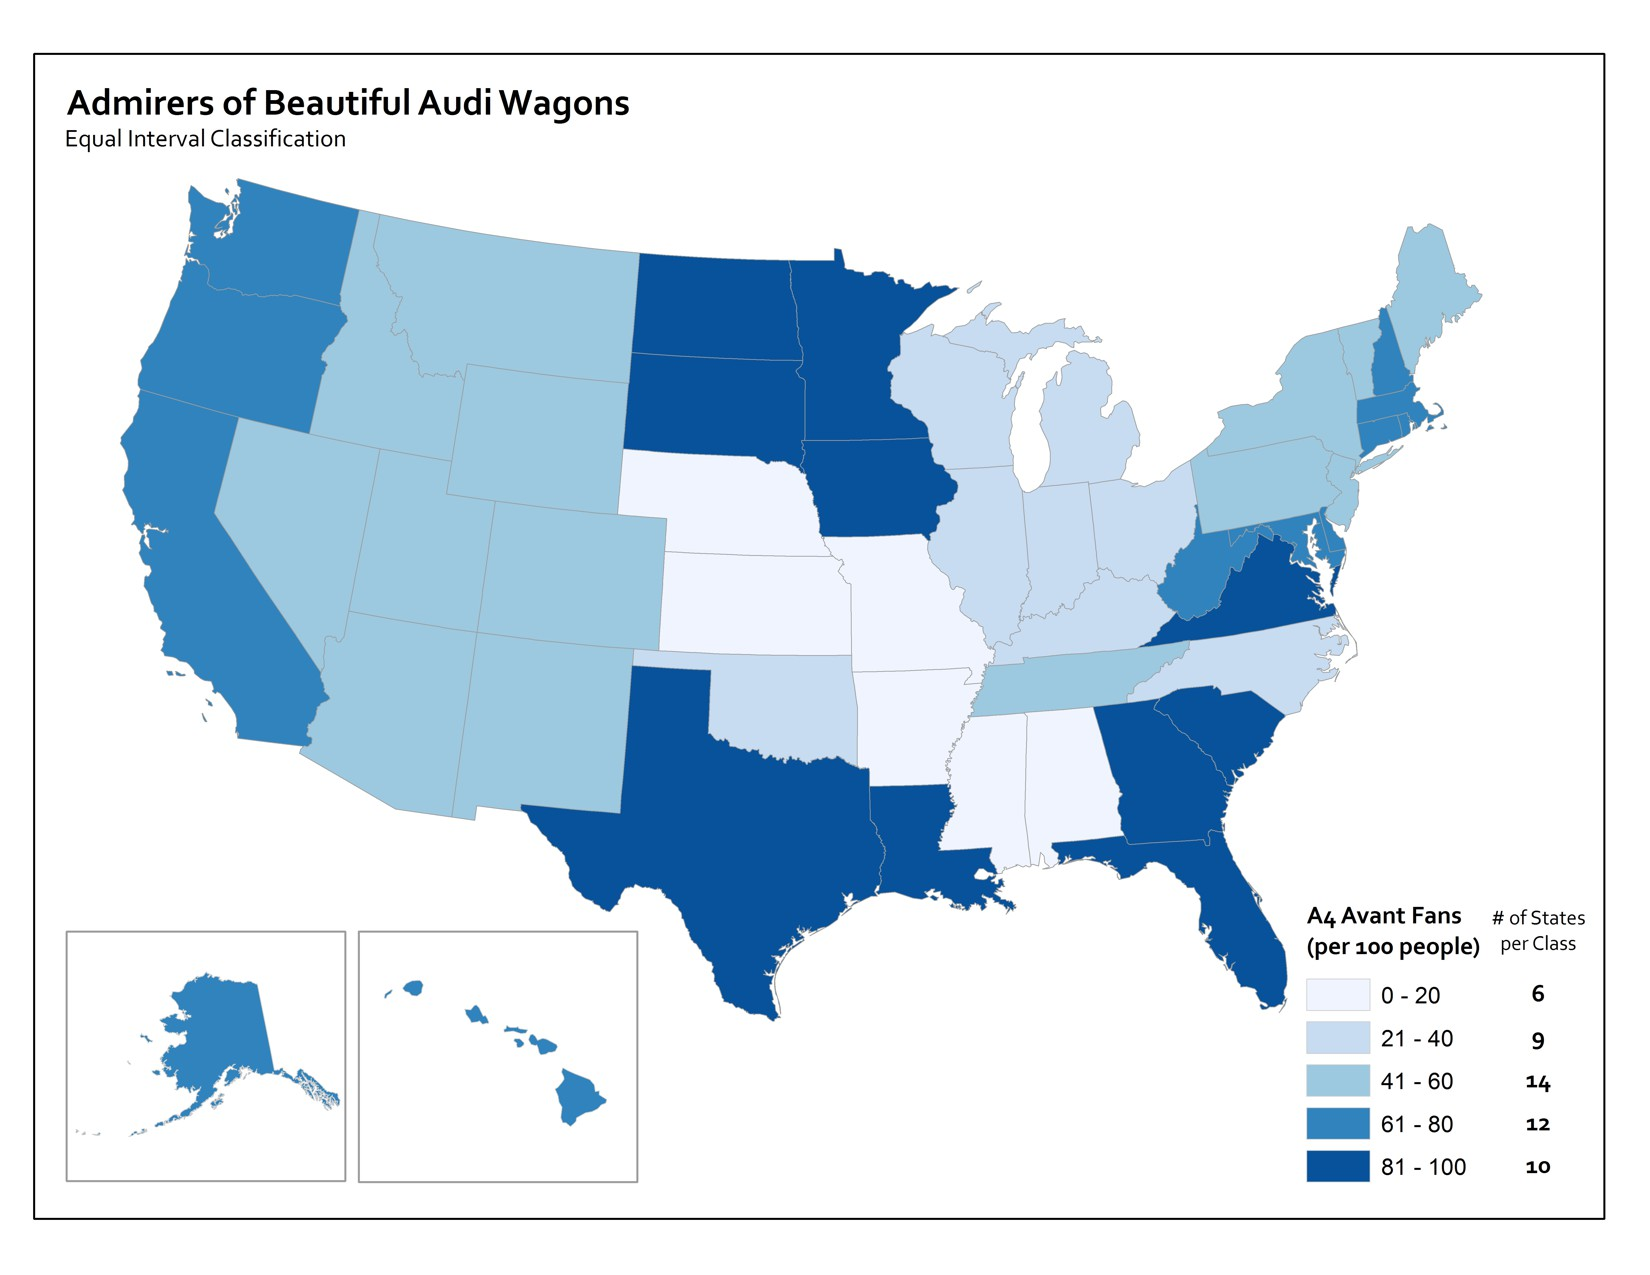 map using equal interval classification to show percent of armirers of Audi wagons per state